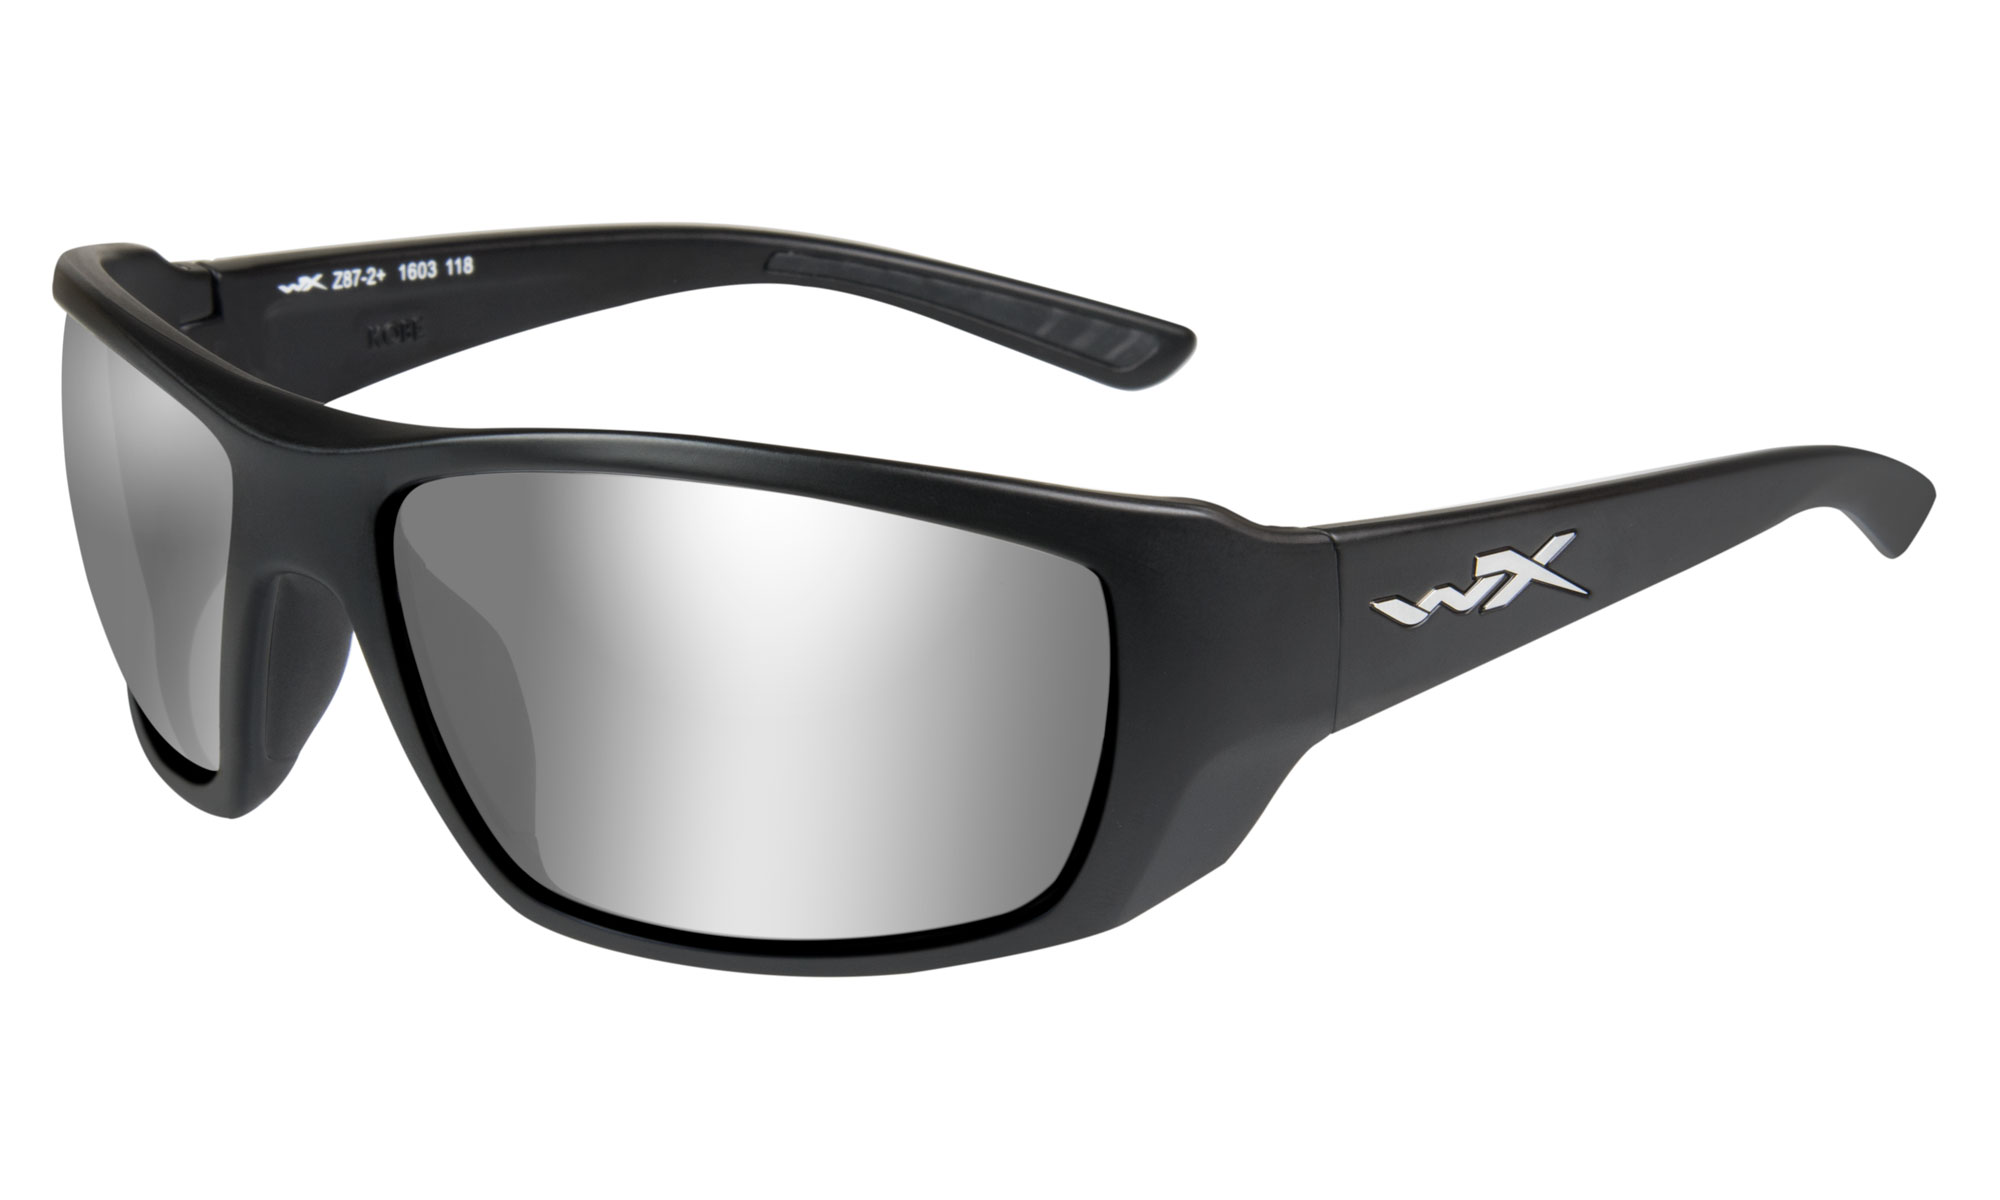 684c9cc71c064 Wiley-X WX Kobe Matte Black with Grey Silver Flash Lenses